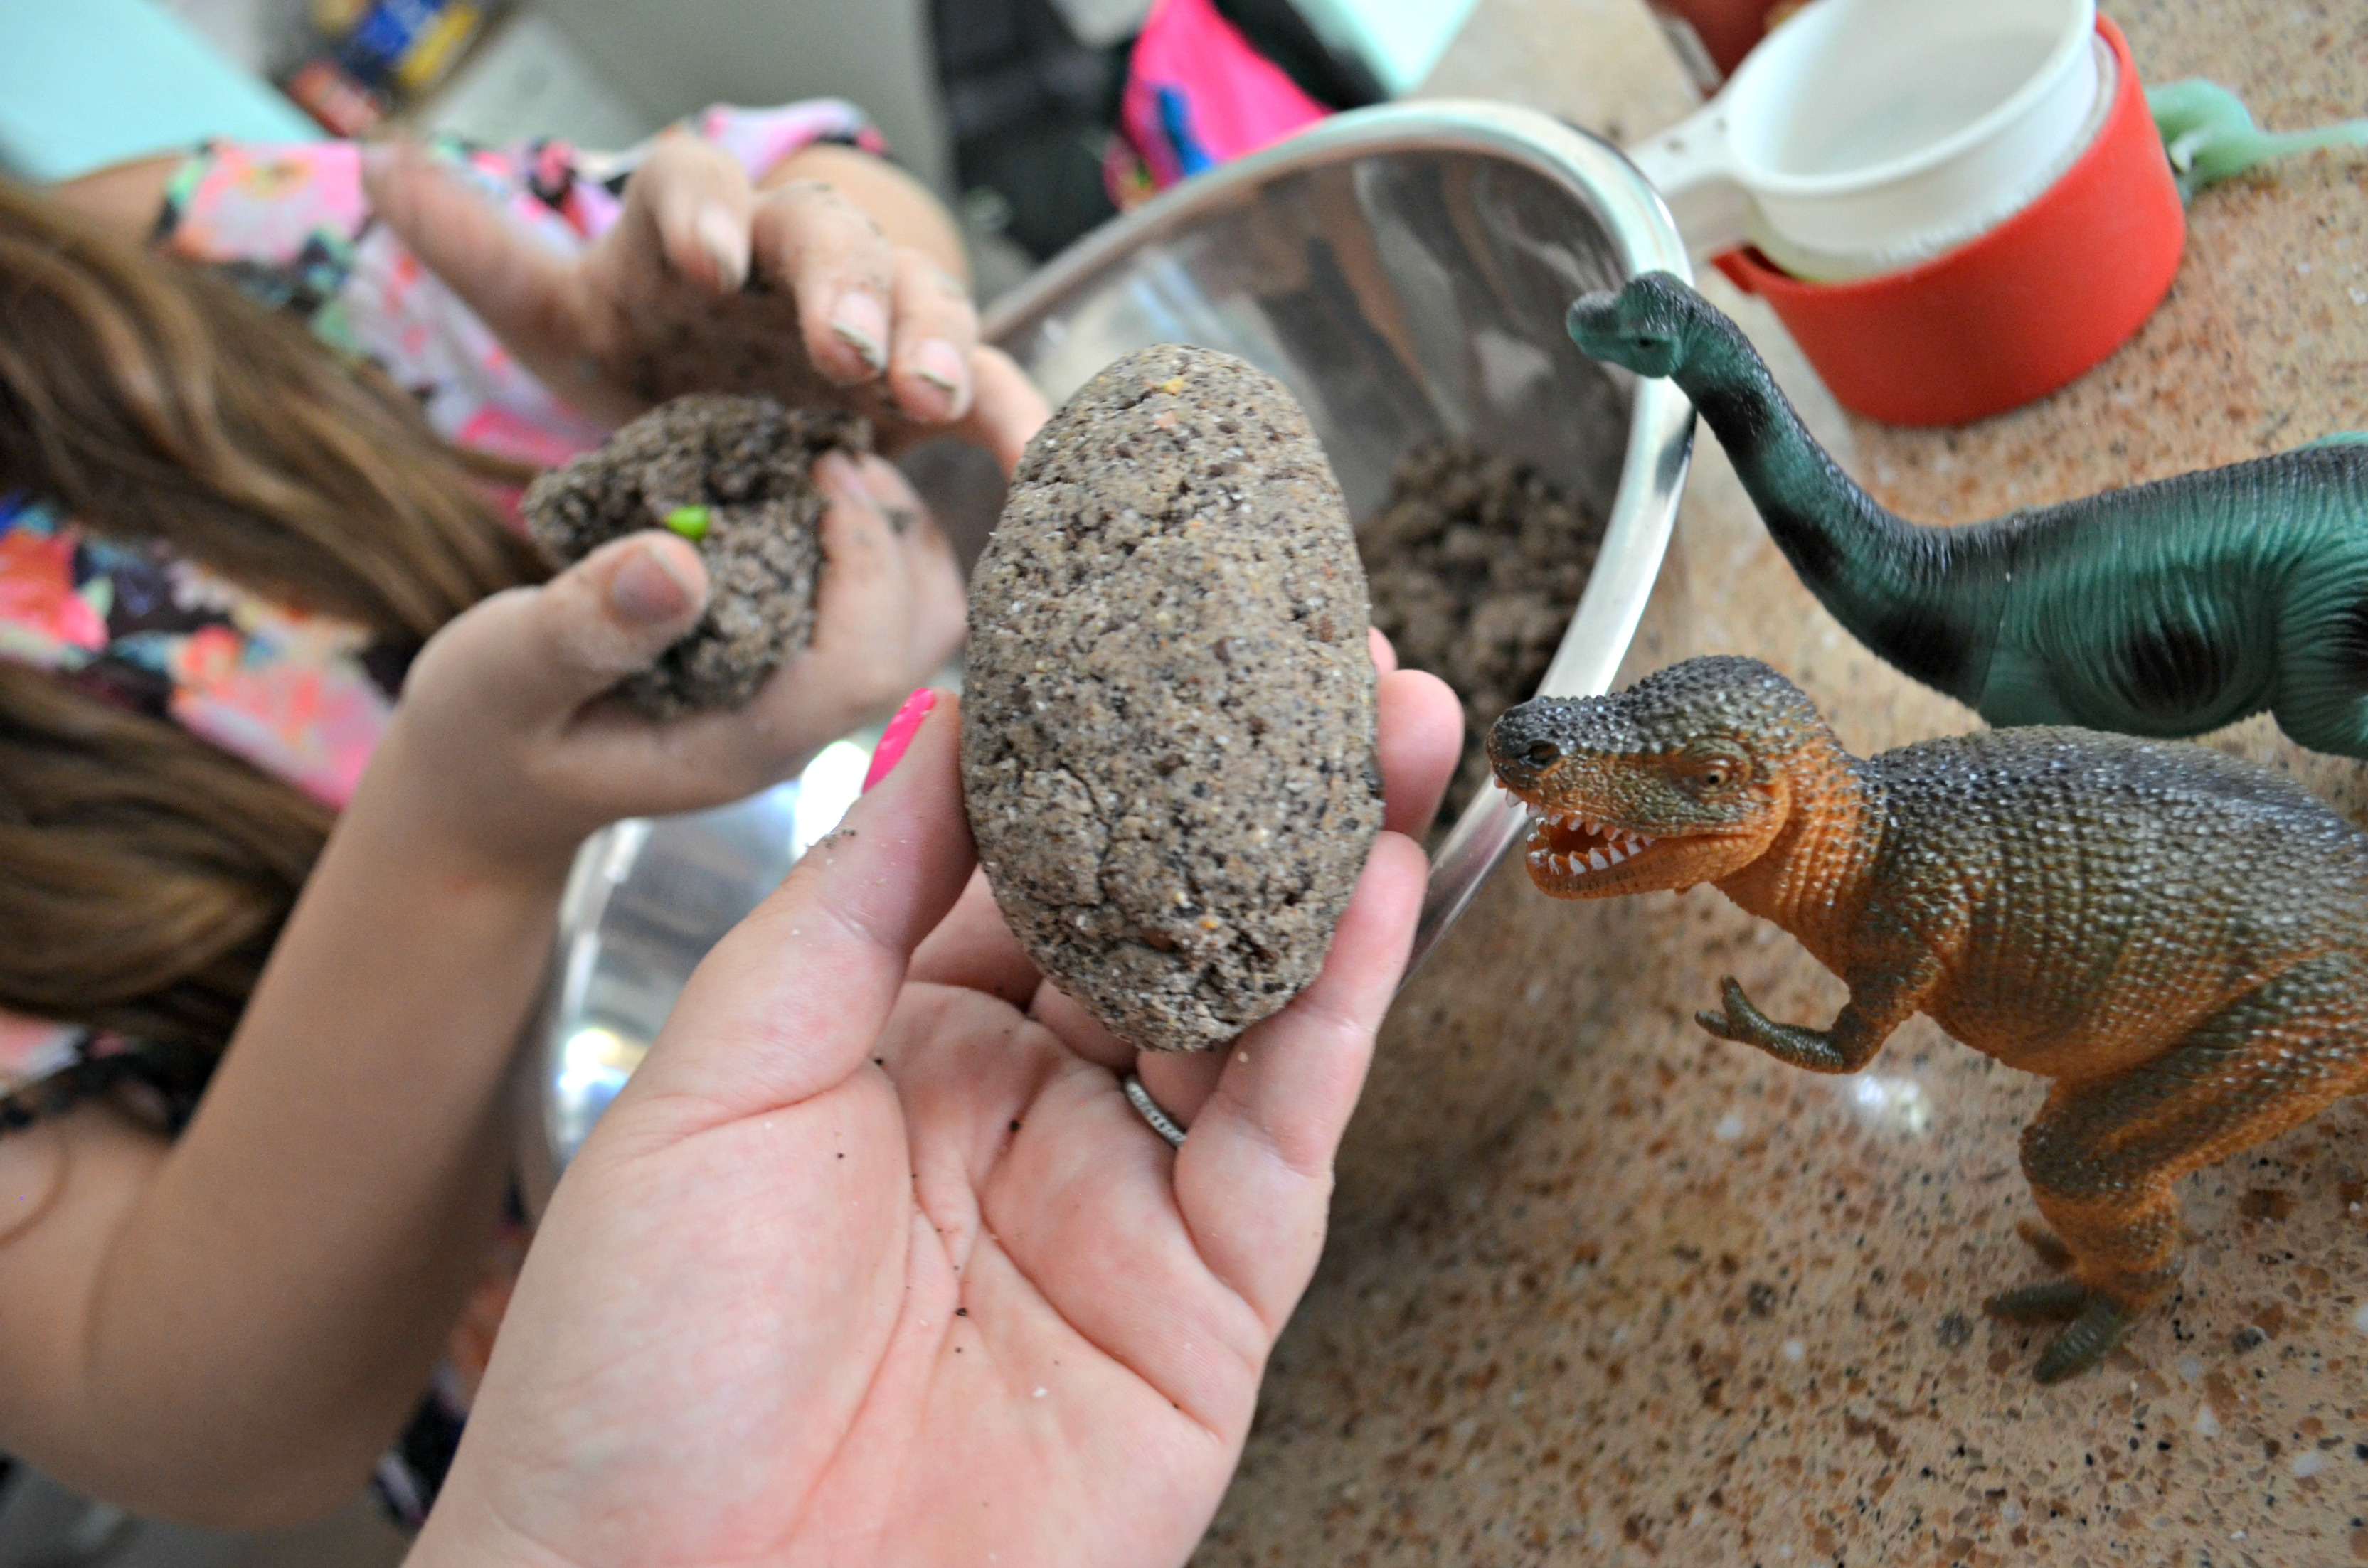 diy dinosaur surprise eggs – Forming the eggs